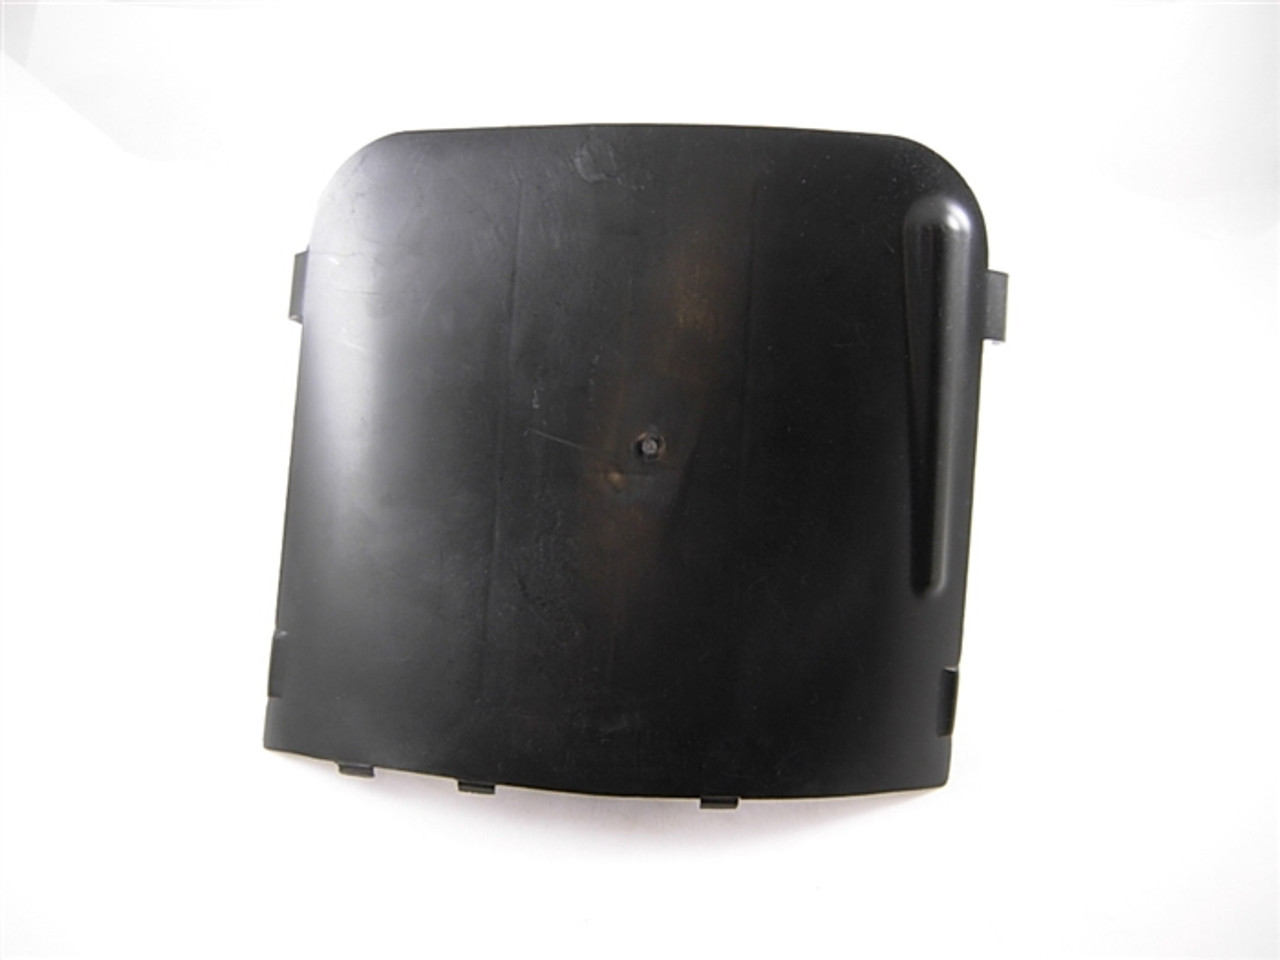 PANEL PIECE /ENGINE PROTECTION COVER 11590-A89-6